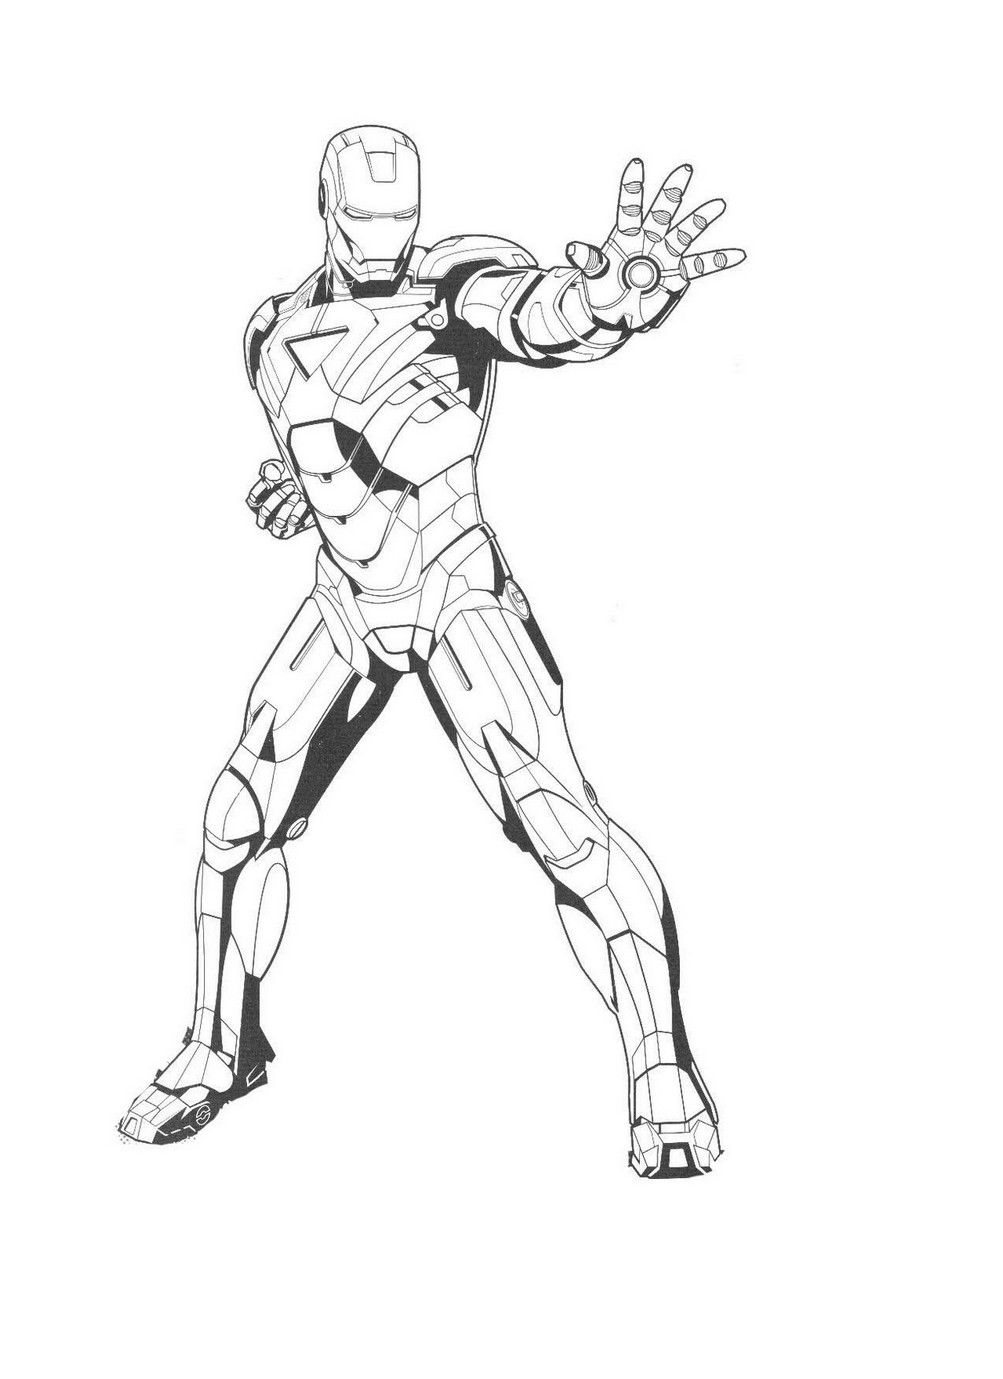 Coloring Page Iron Man Hd Superhero Coloring Pages Superhero Coloring Spiderman Coloring